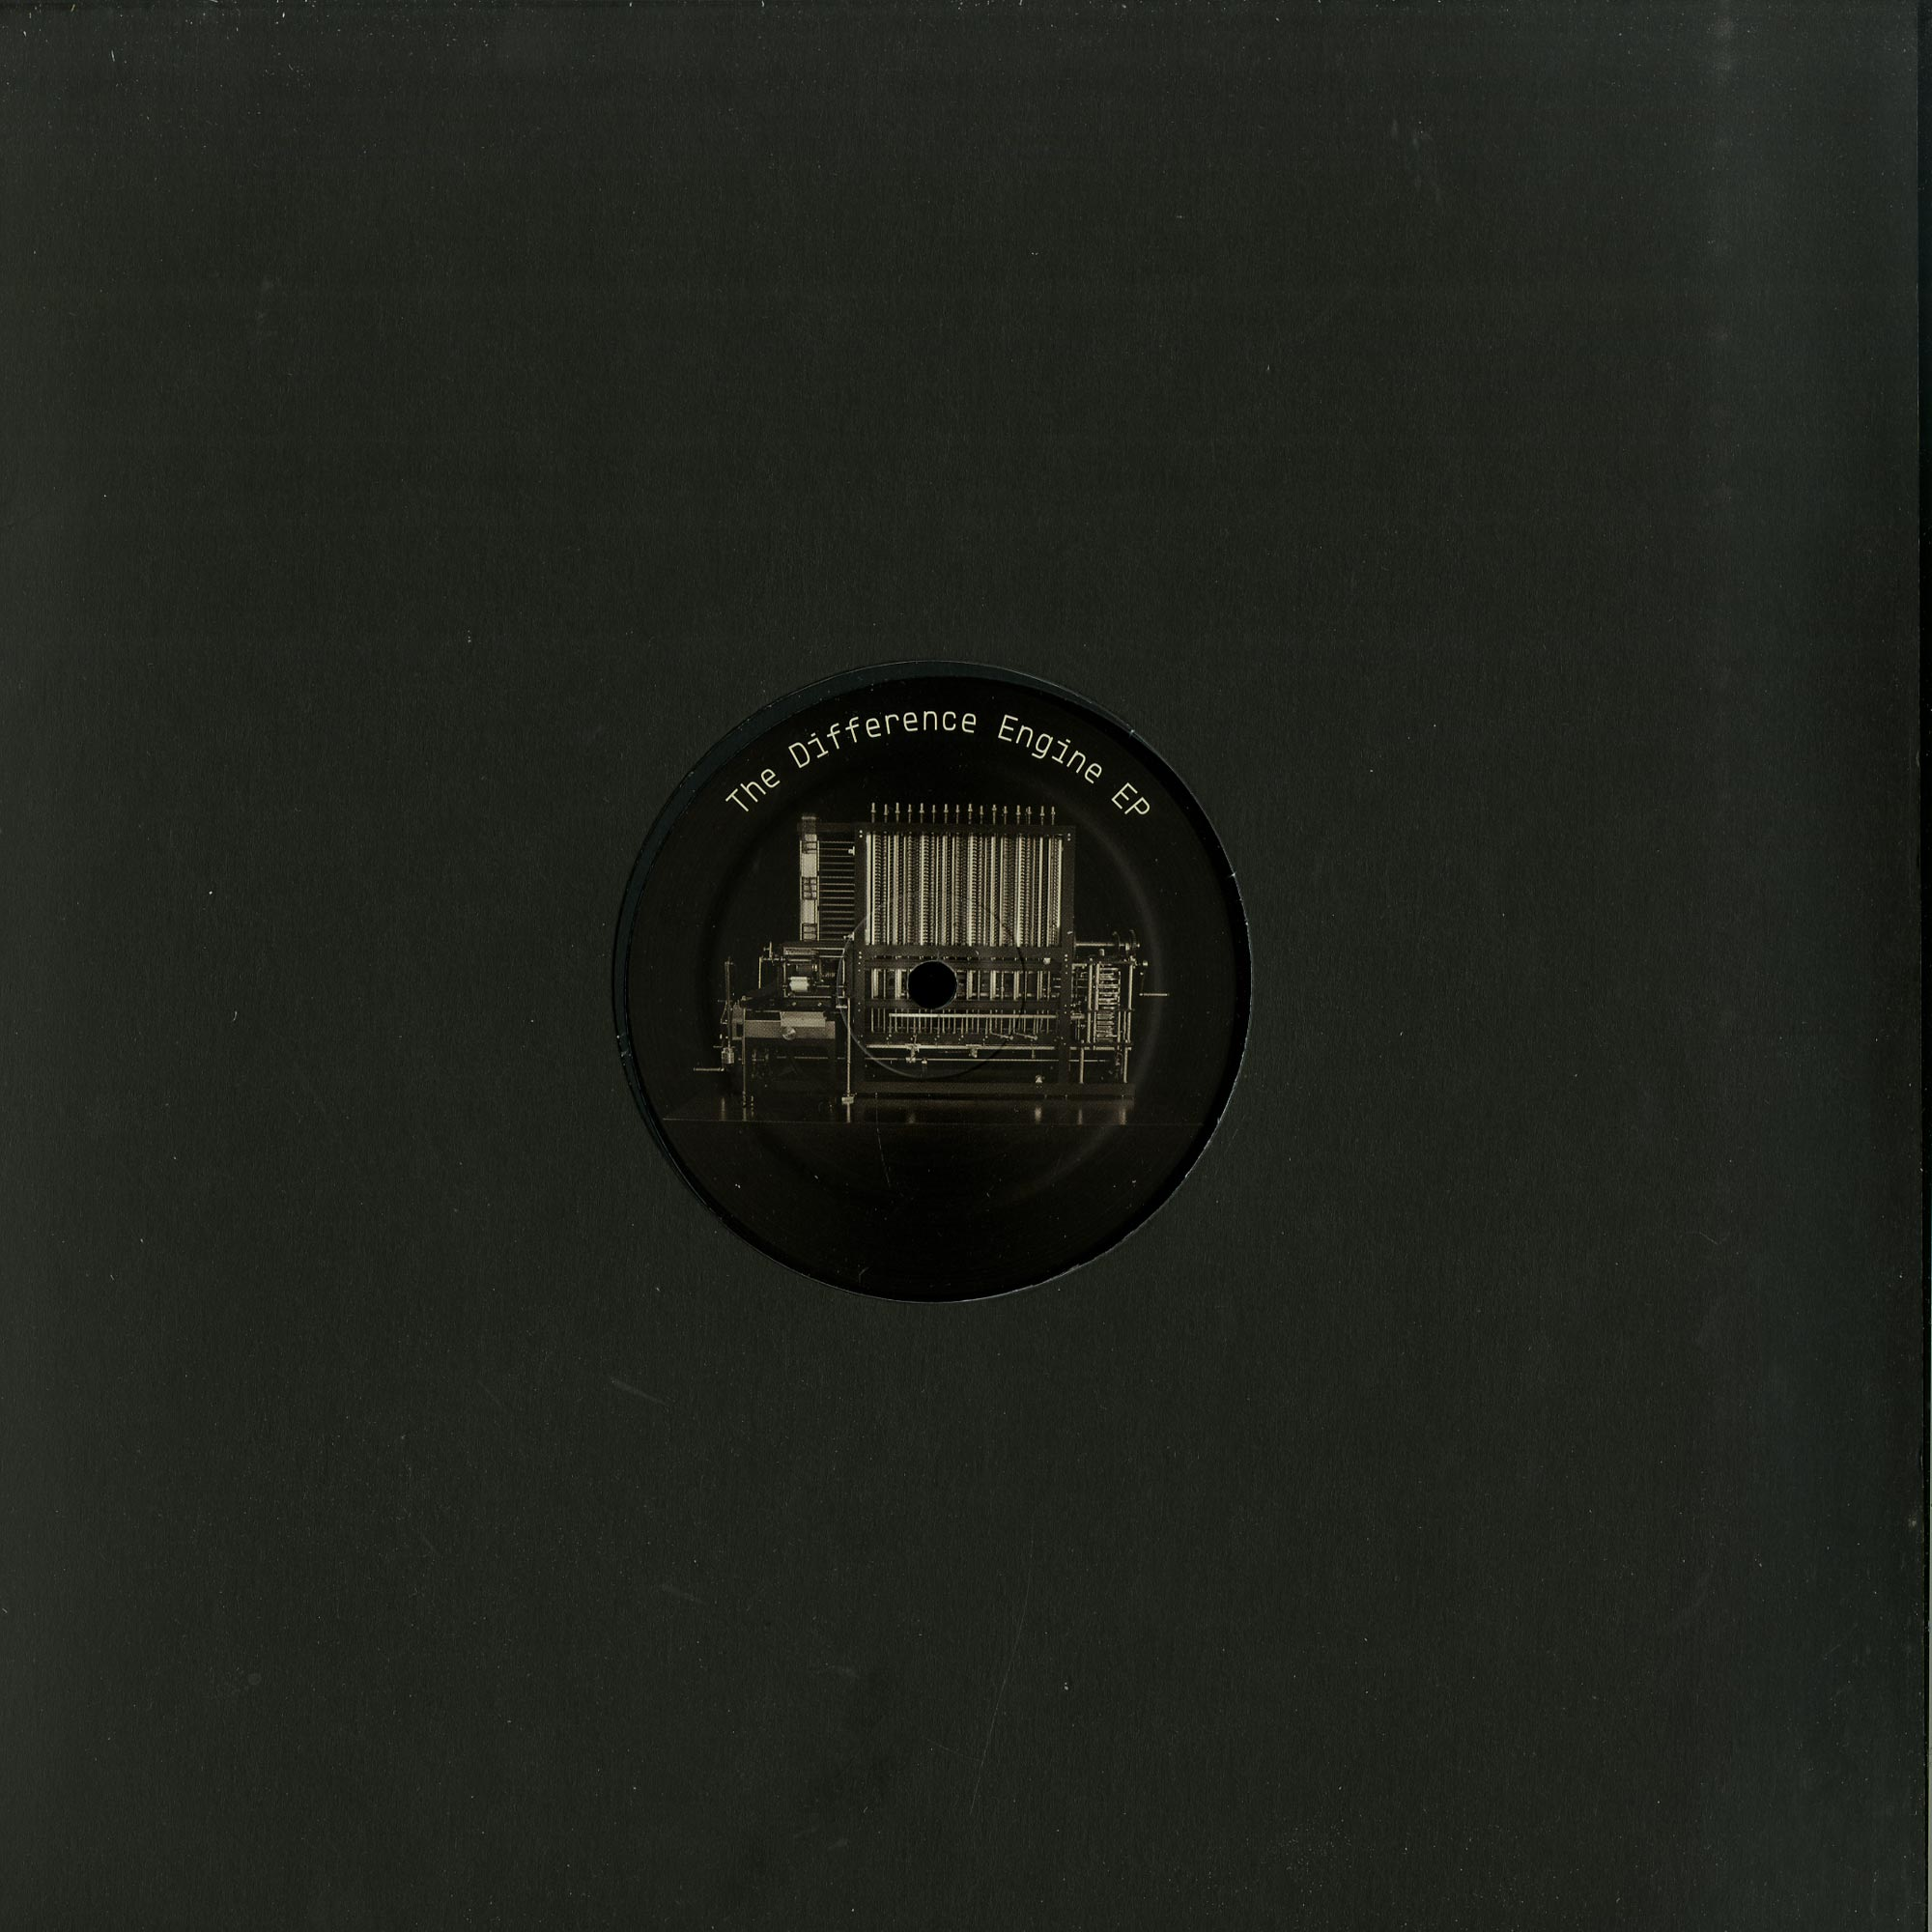 Information Ghetto / PQ17 - THE DIFFERENCE ENGINE EP